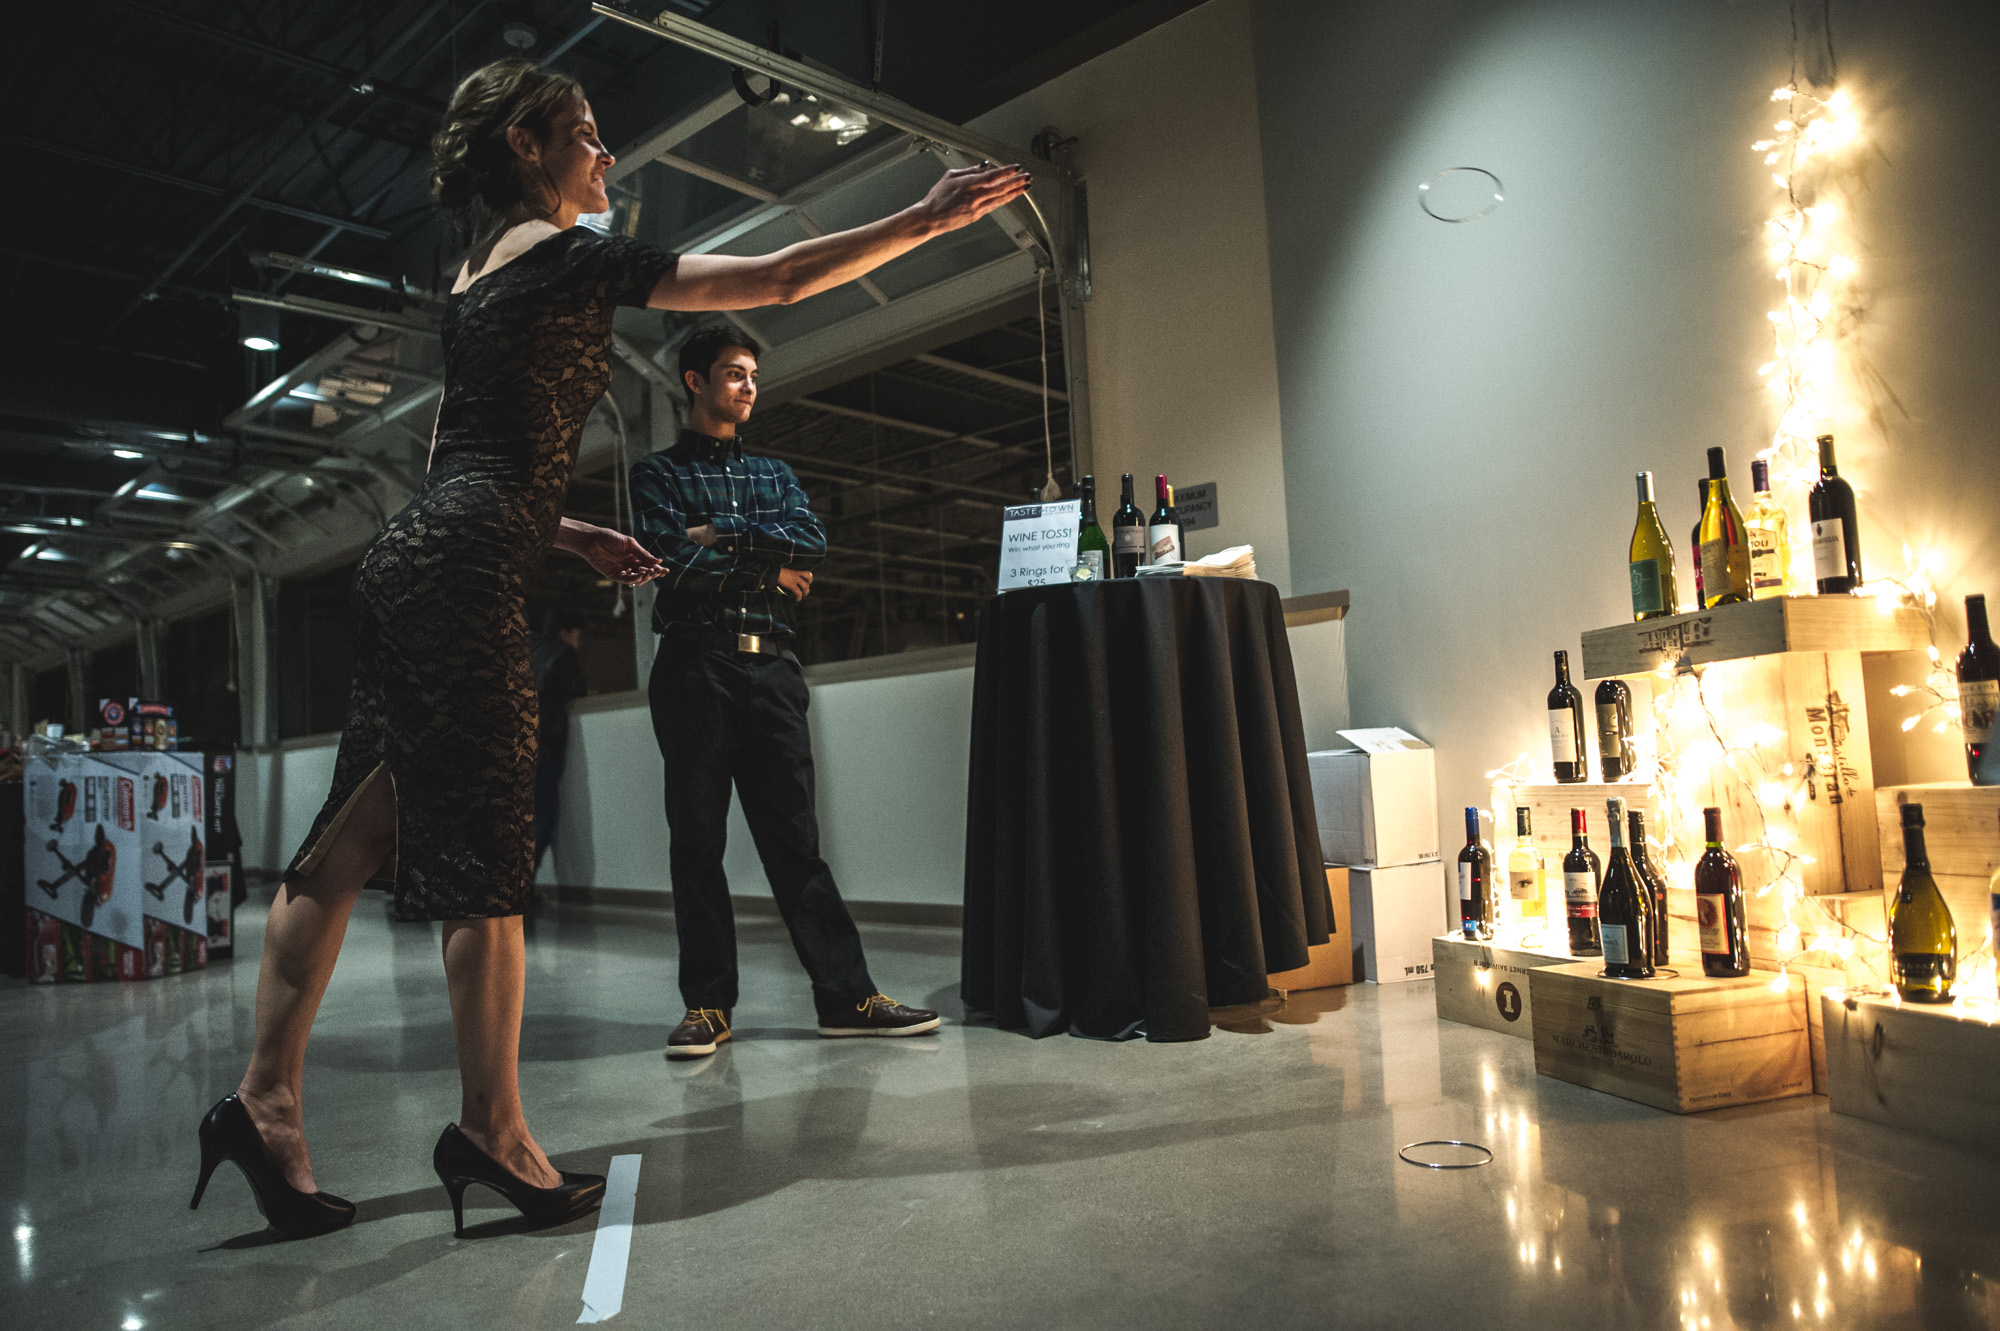 A woman in a cocktail dress and high heels throws rings at a wine display in hopes of getting one around a wine bottle as a man in the background watches. Photo in color.